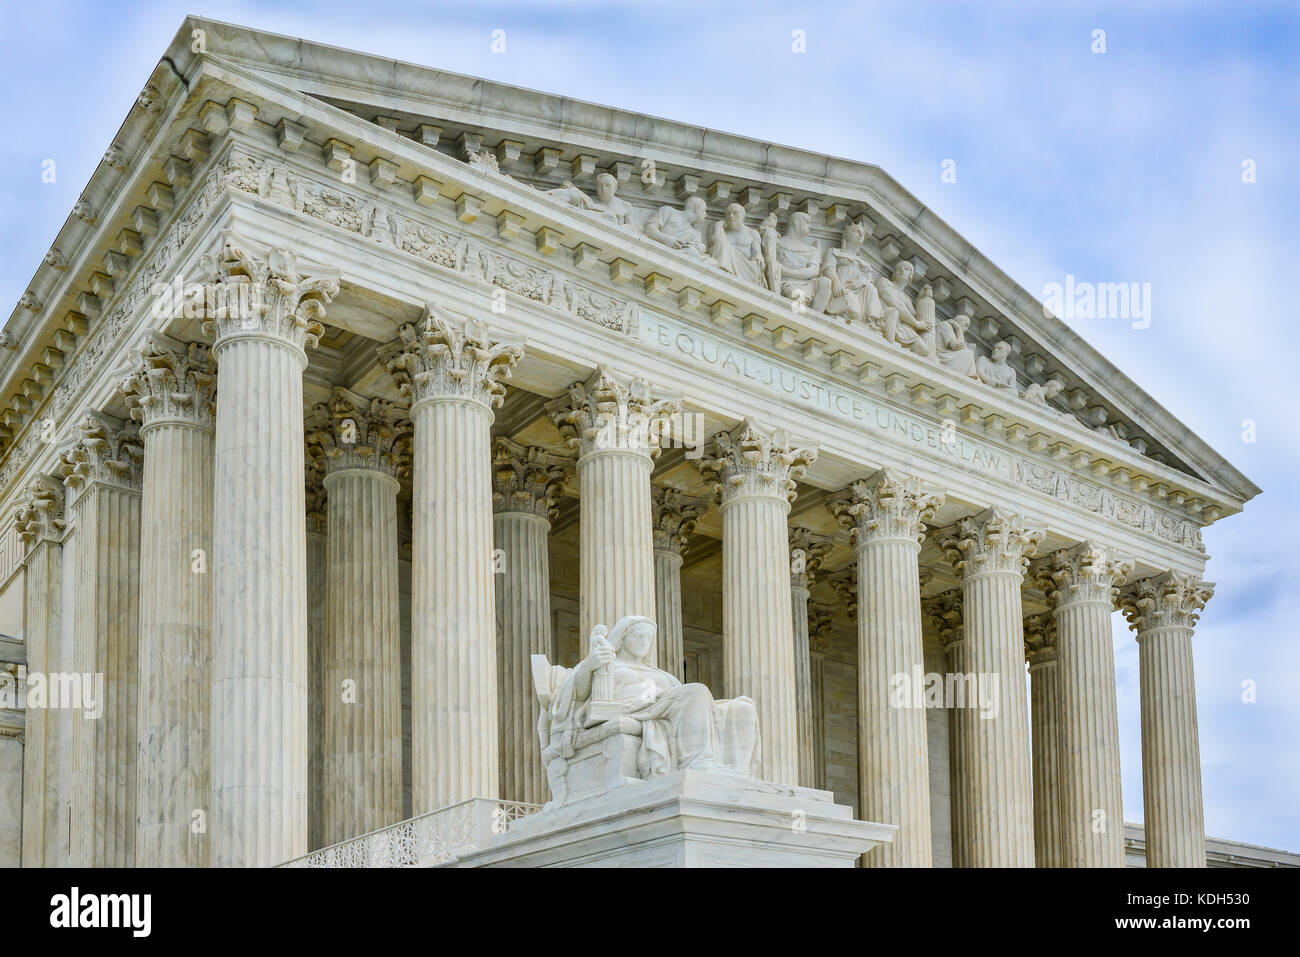 Entrance to the US Supreme Court's magestic bulding with the Statue of Contemplation in foreground  in Washington, - Stock Image